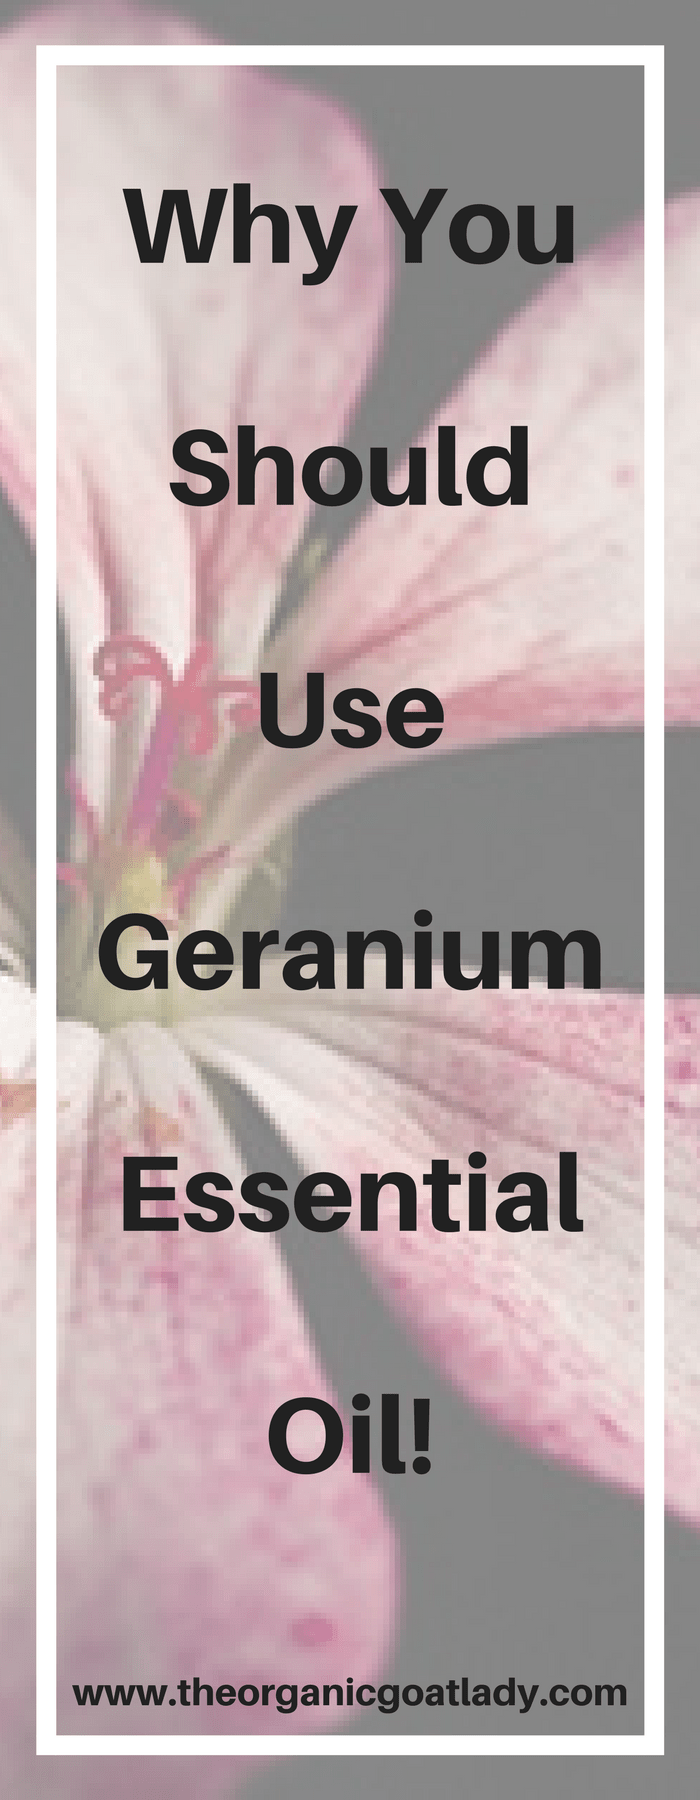 Why You Should Use Geranium Essential Oil!